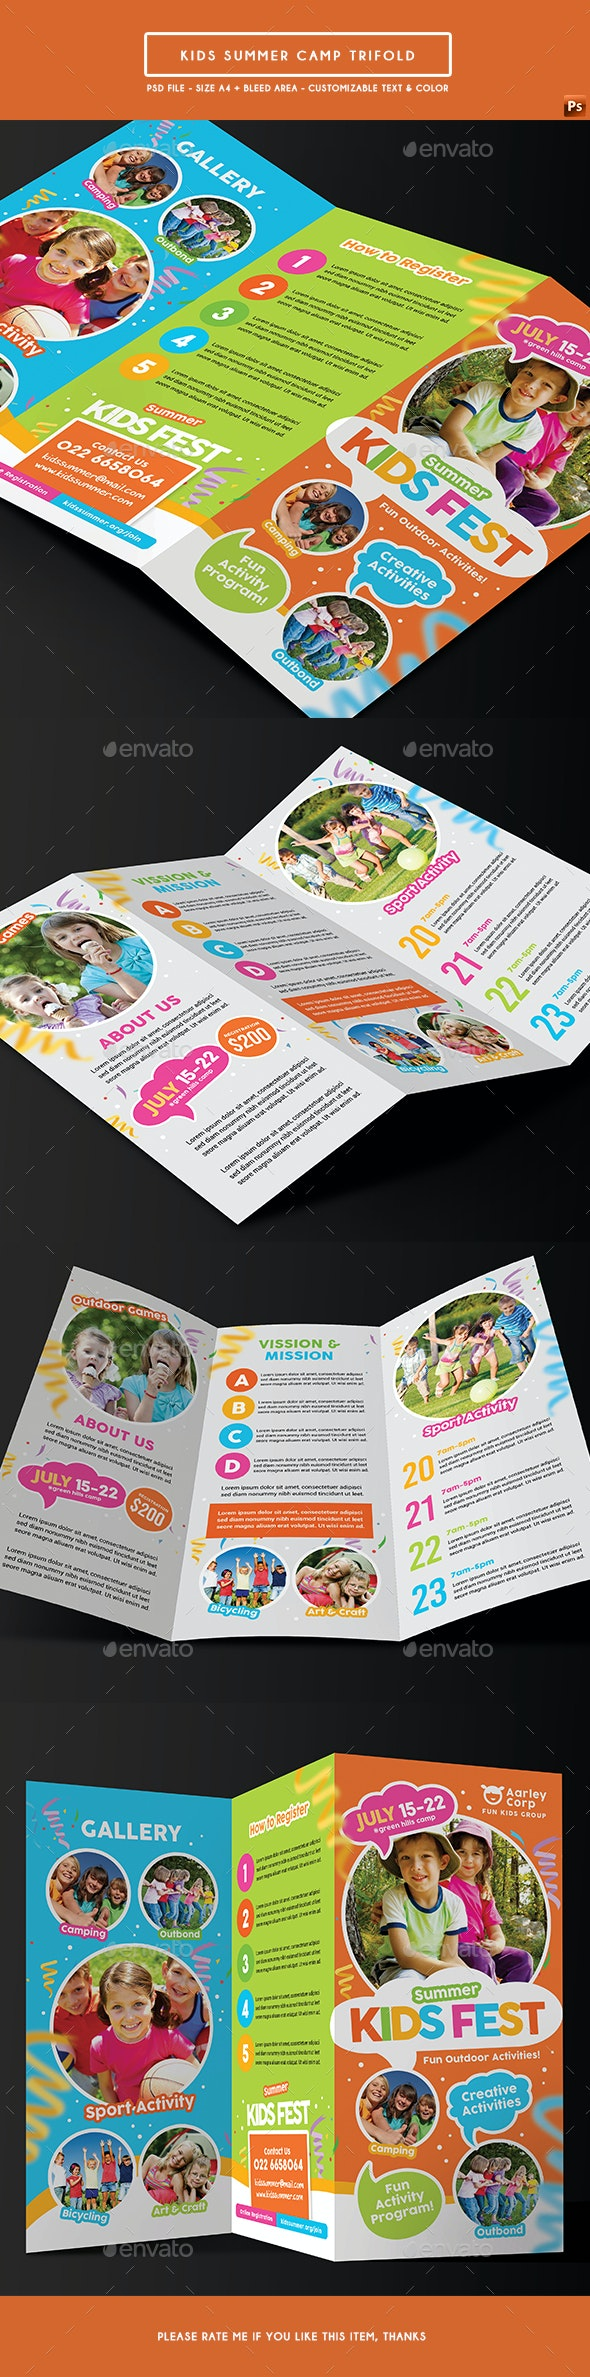 Kids Summer Camp Trifold - Corporate Flyers